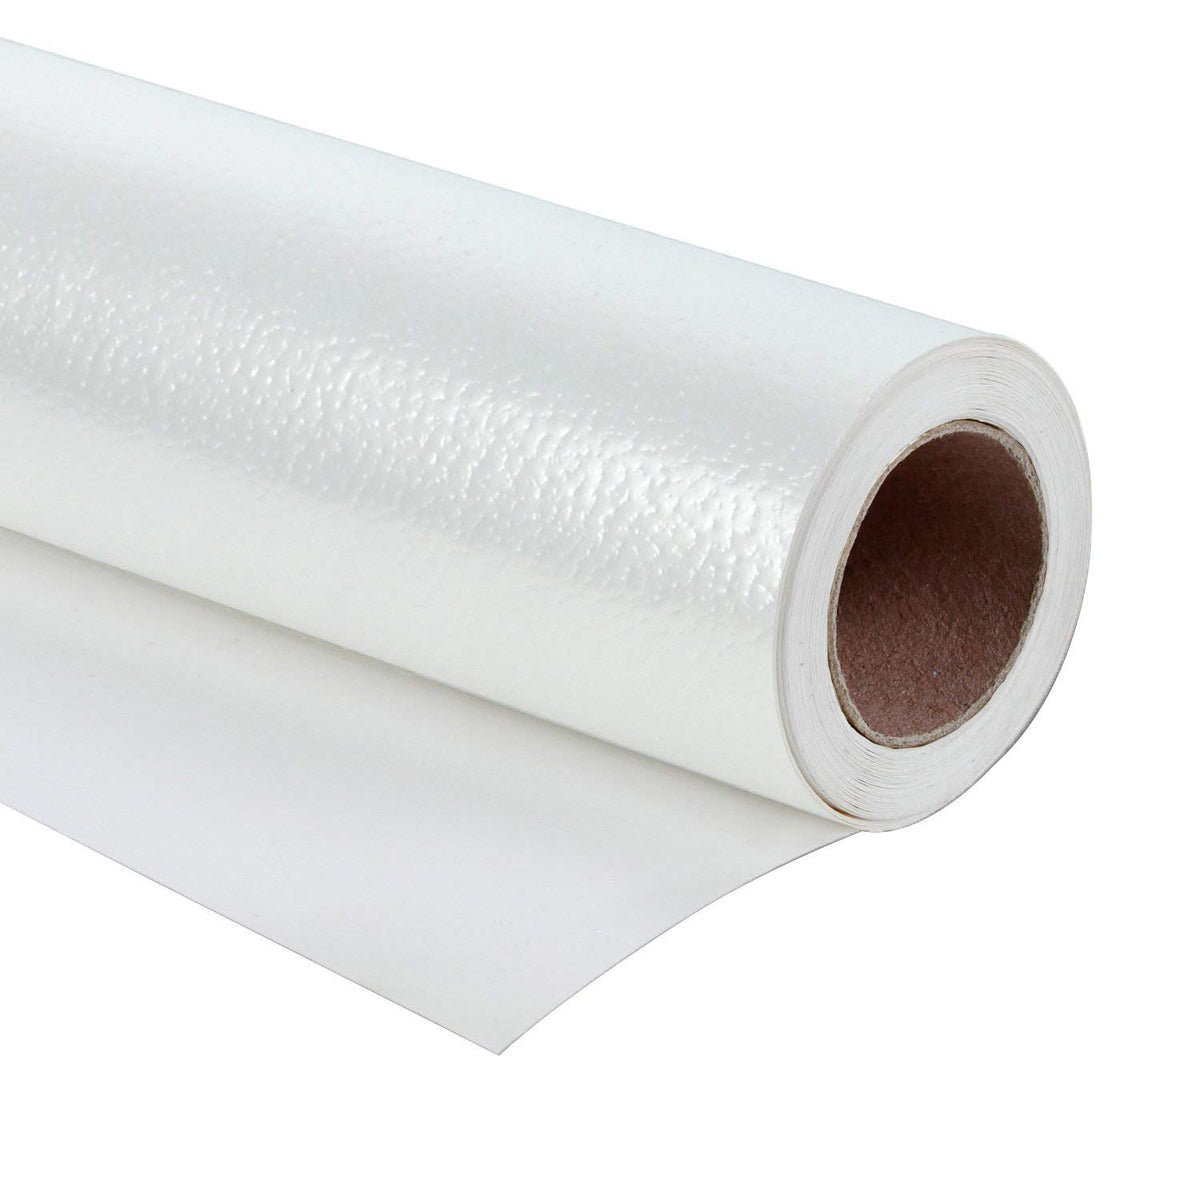 WRAPAHOLIC-Metalic-Gift-Wrapping-Paper- White-Lychee-Leather-Grain-1